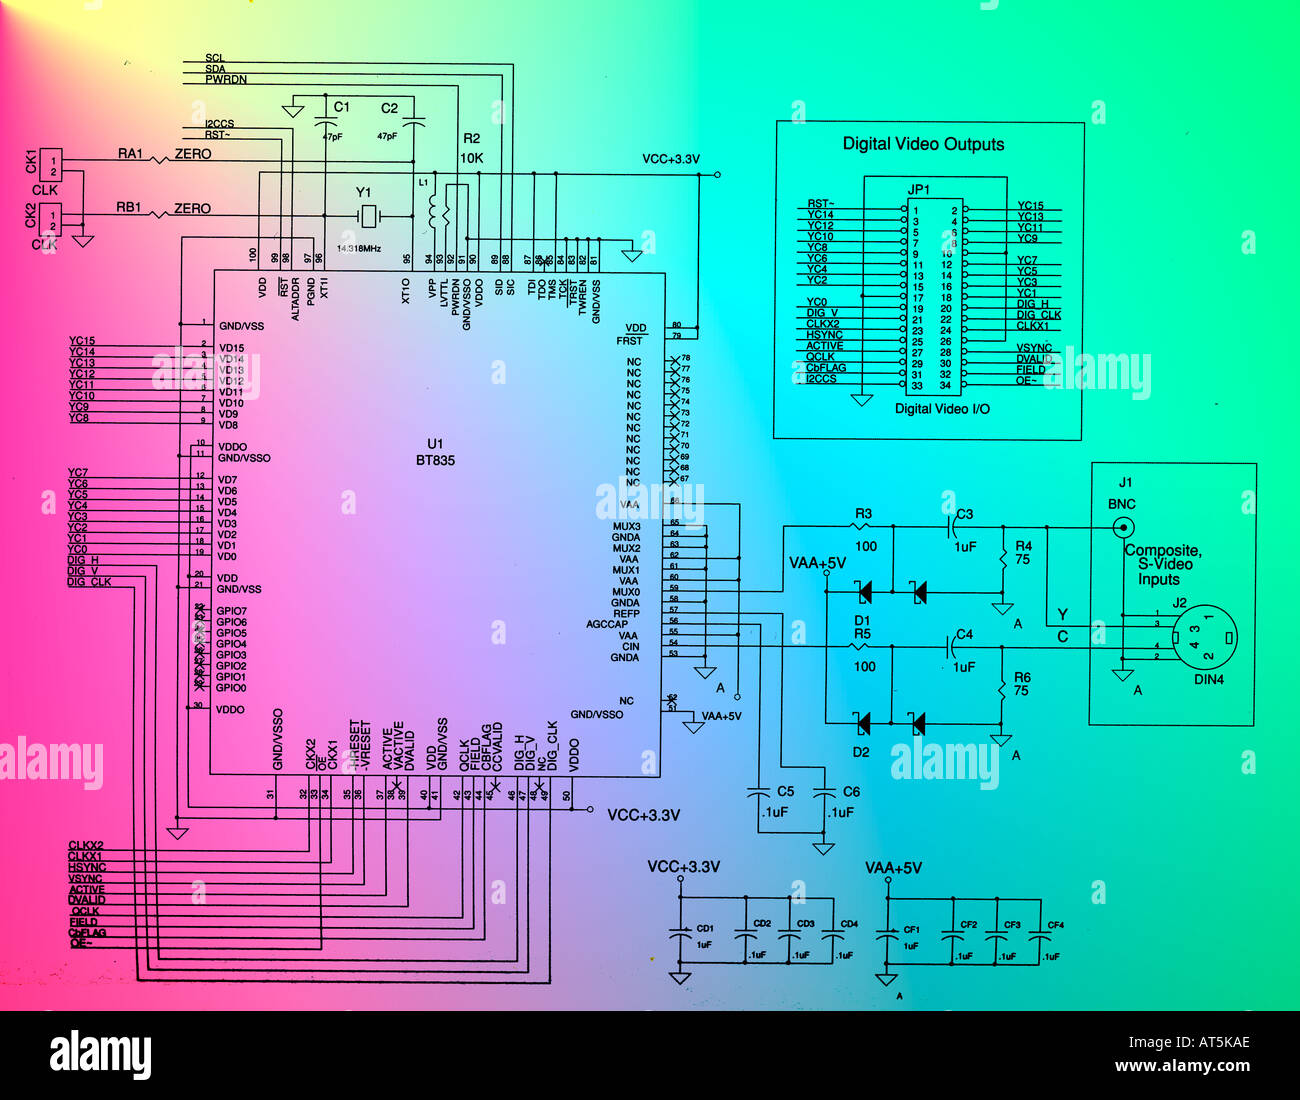 computer monitor displaying technical electronic schematic of ...